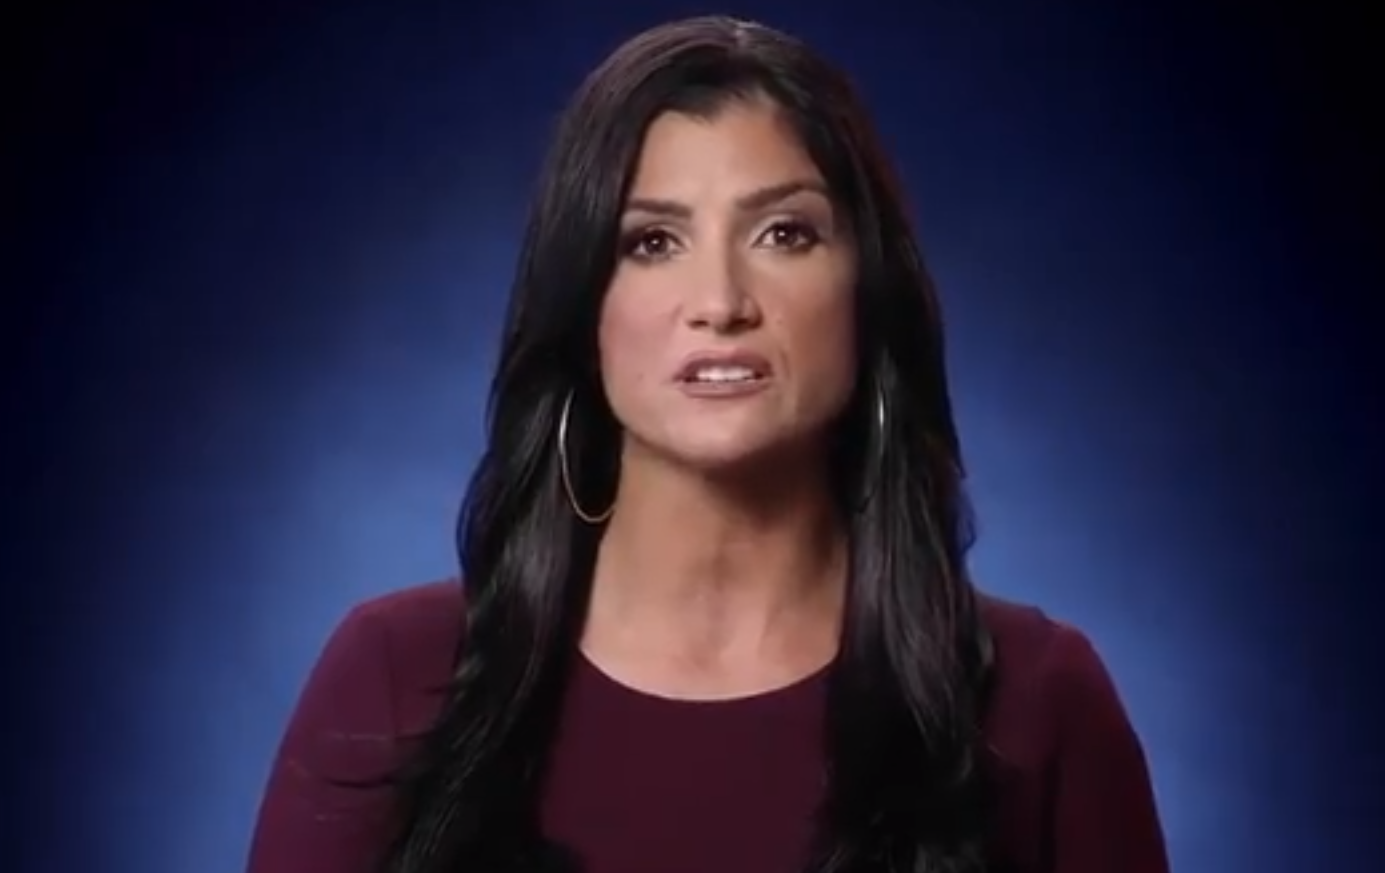 'Fight violence of lies with clenched first of truth:' NRA releases angry recruitment ad (Photo: NRA)